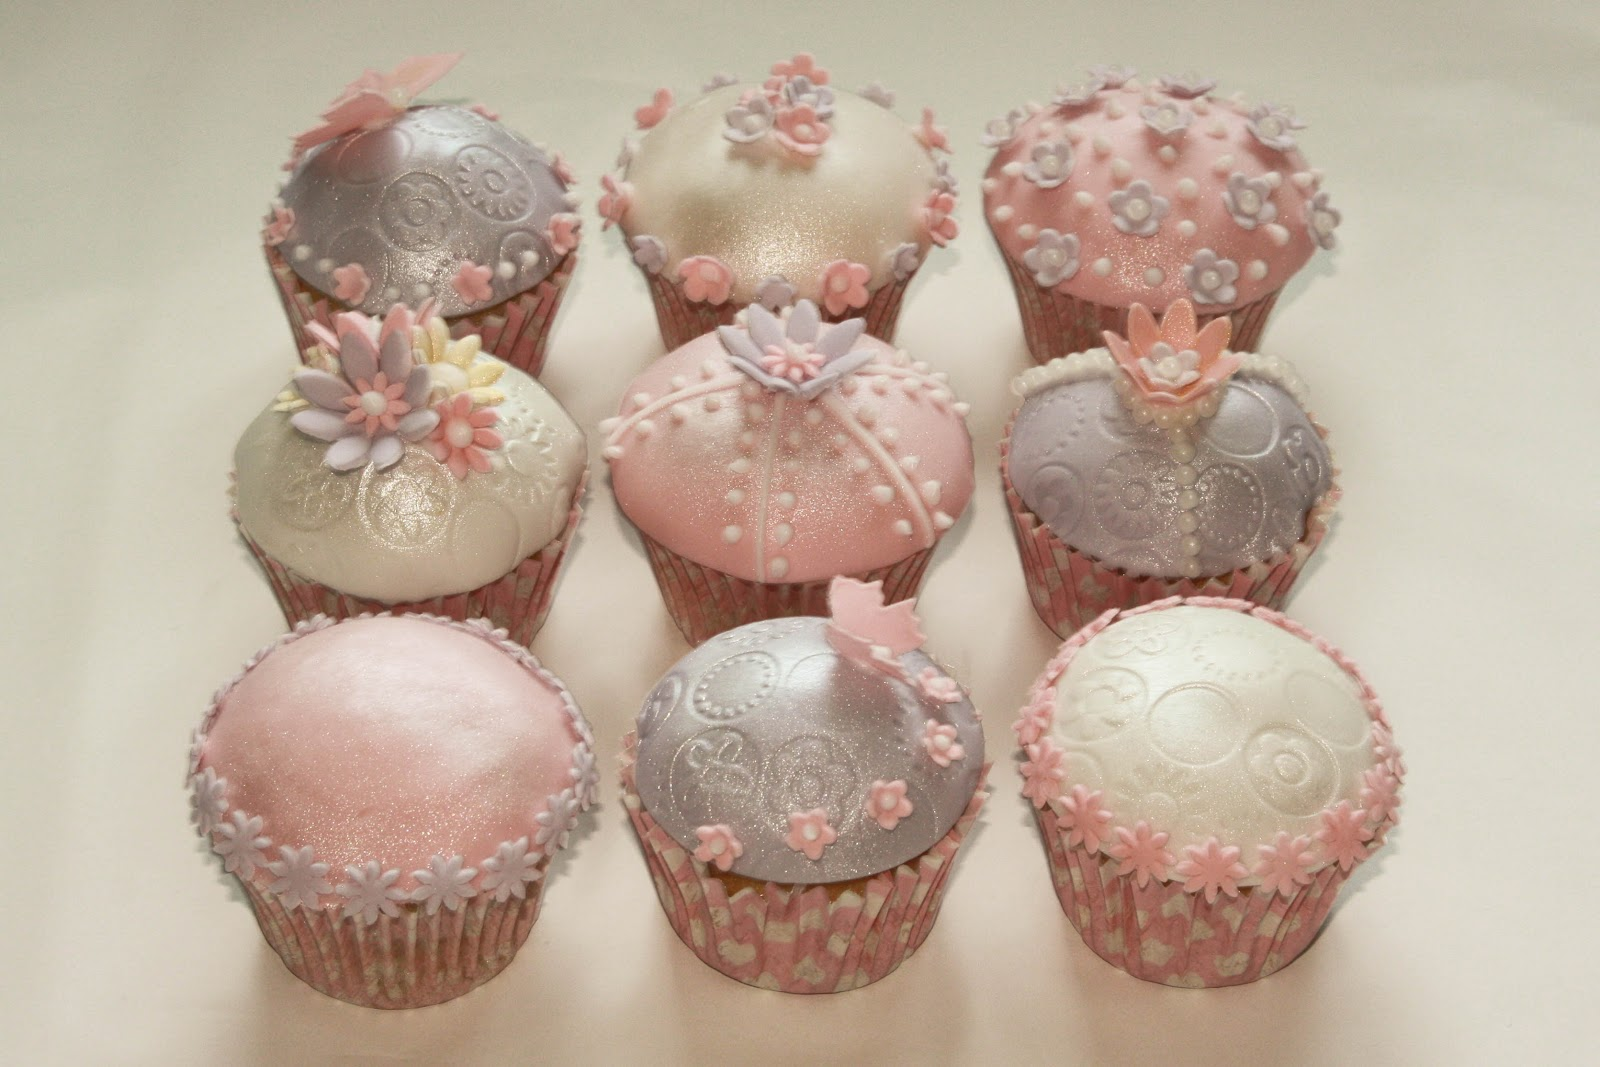 Cupcakes Wallpapers High Quality